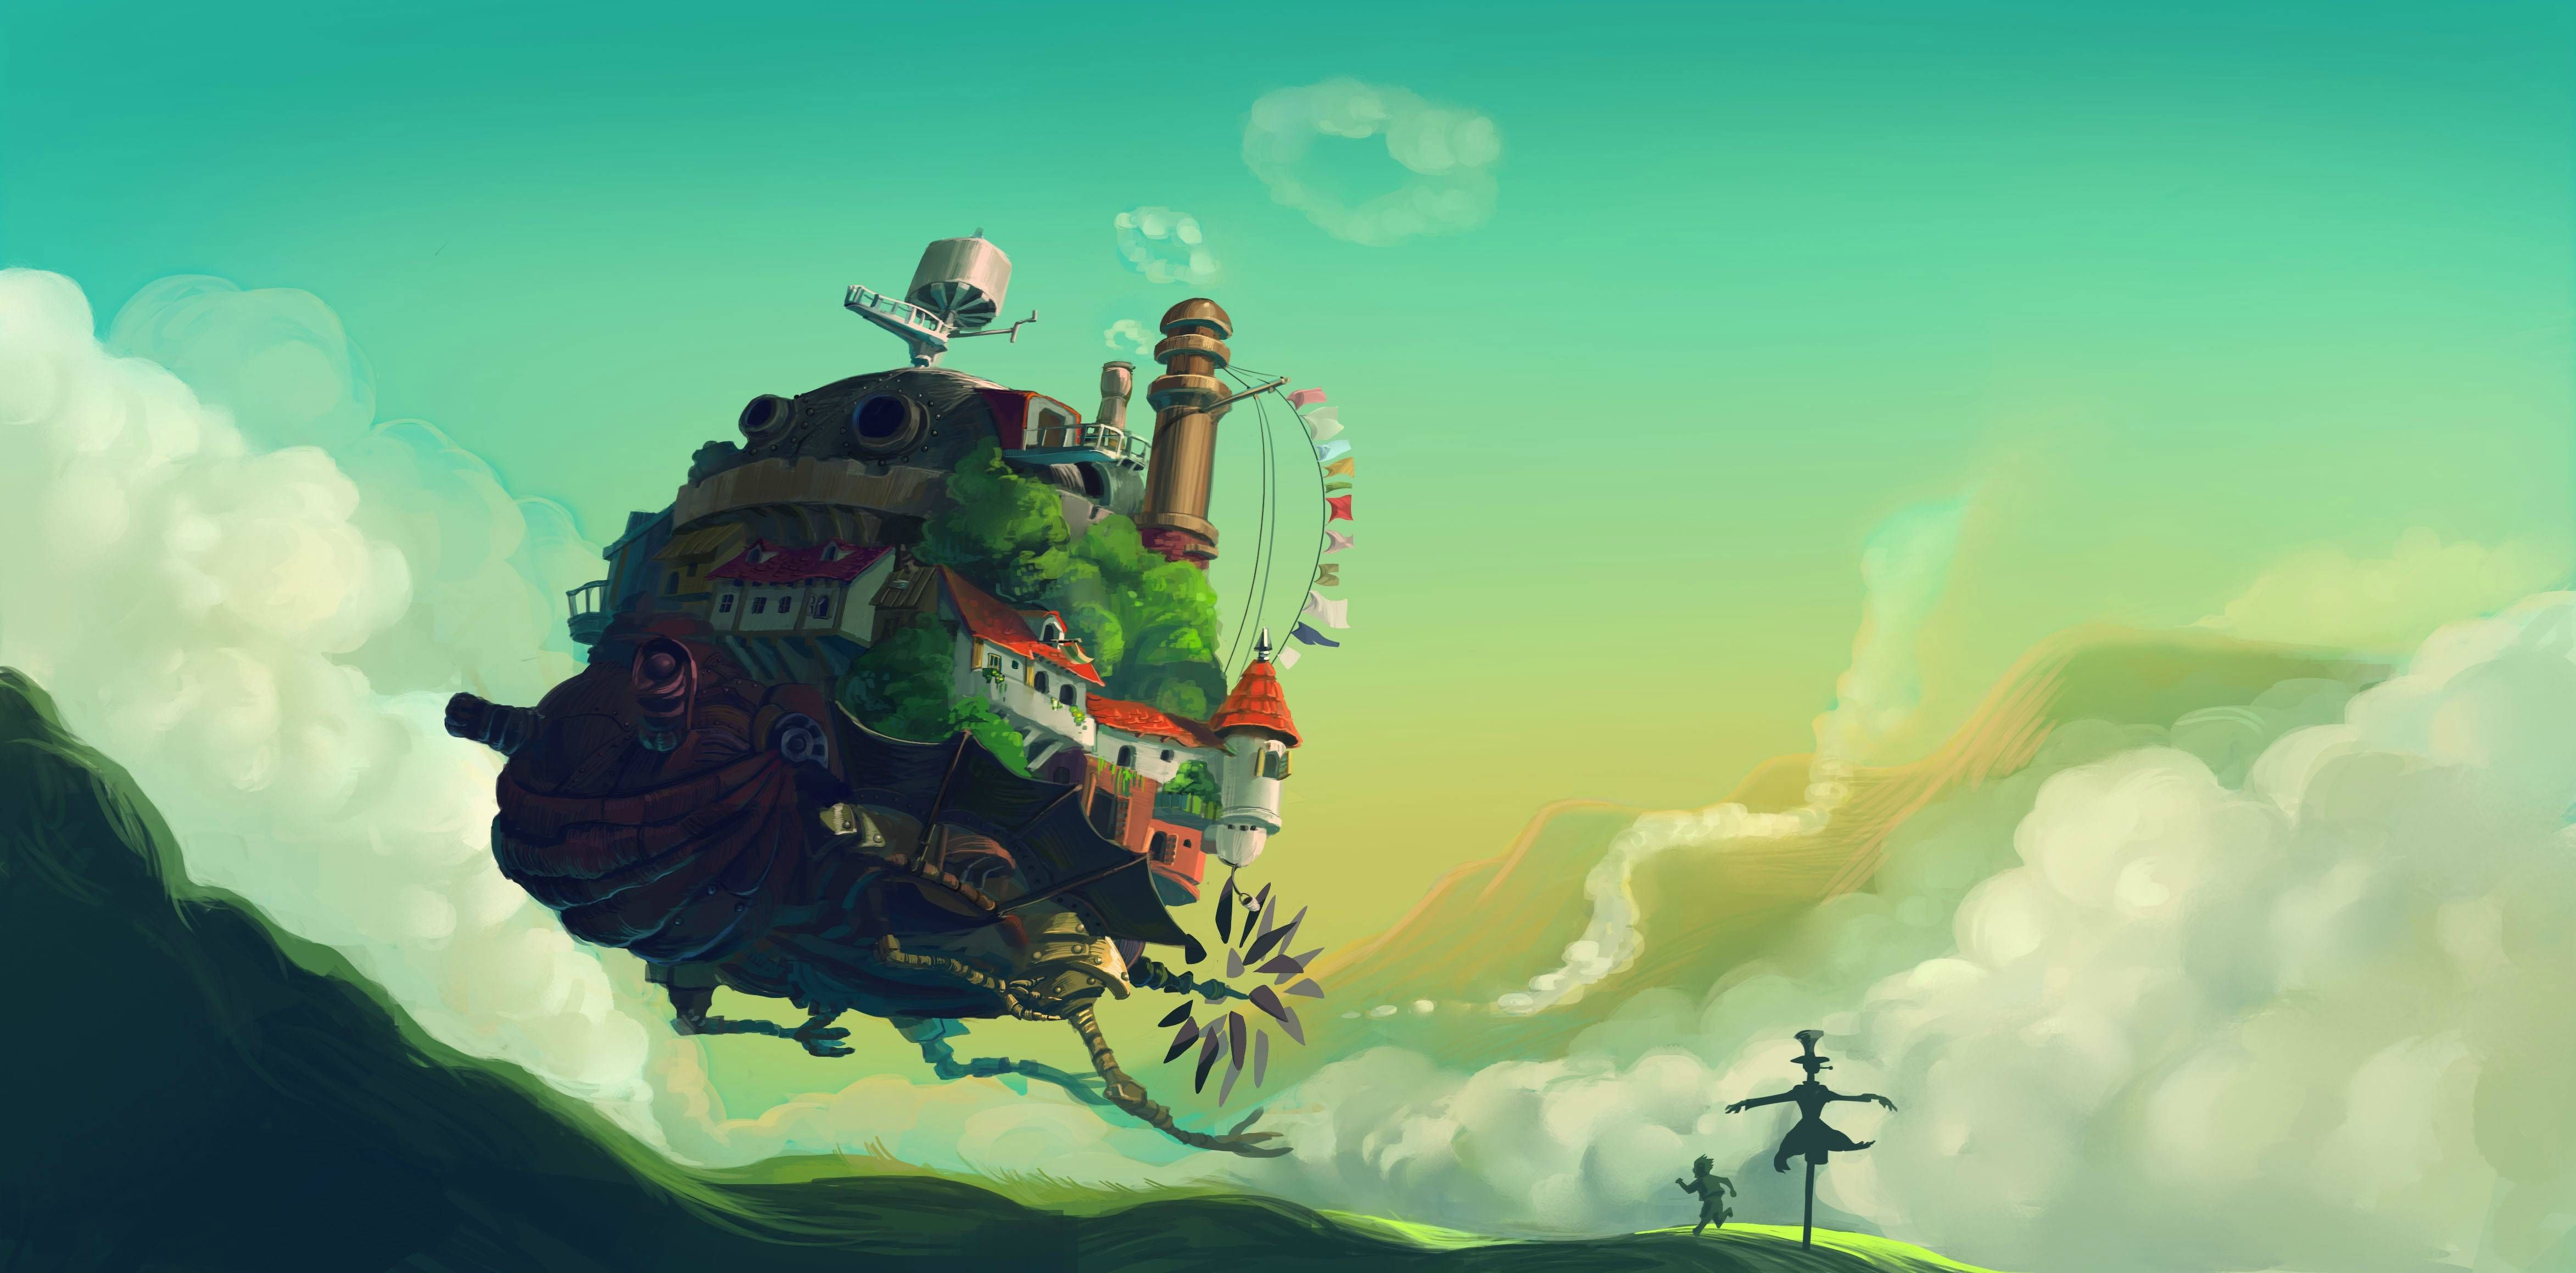 Studio Ghibli Wallpaper 4691x2319 Howls Moving Castle Art Howls Moving Castle Wallpaper Howl S Moving Castle